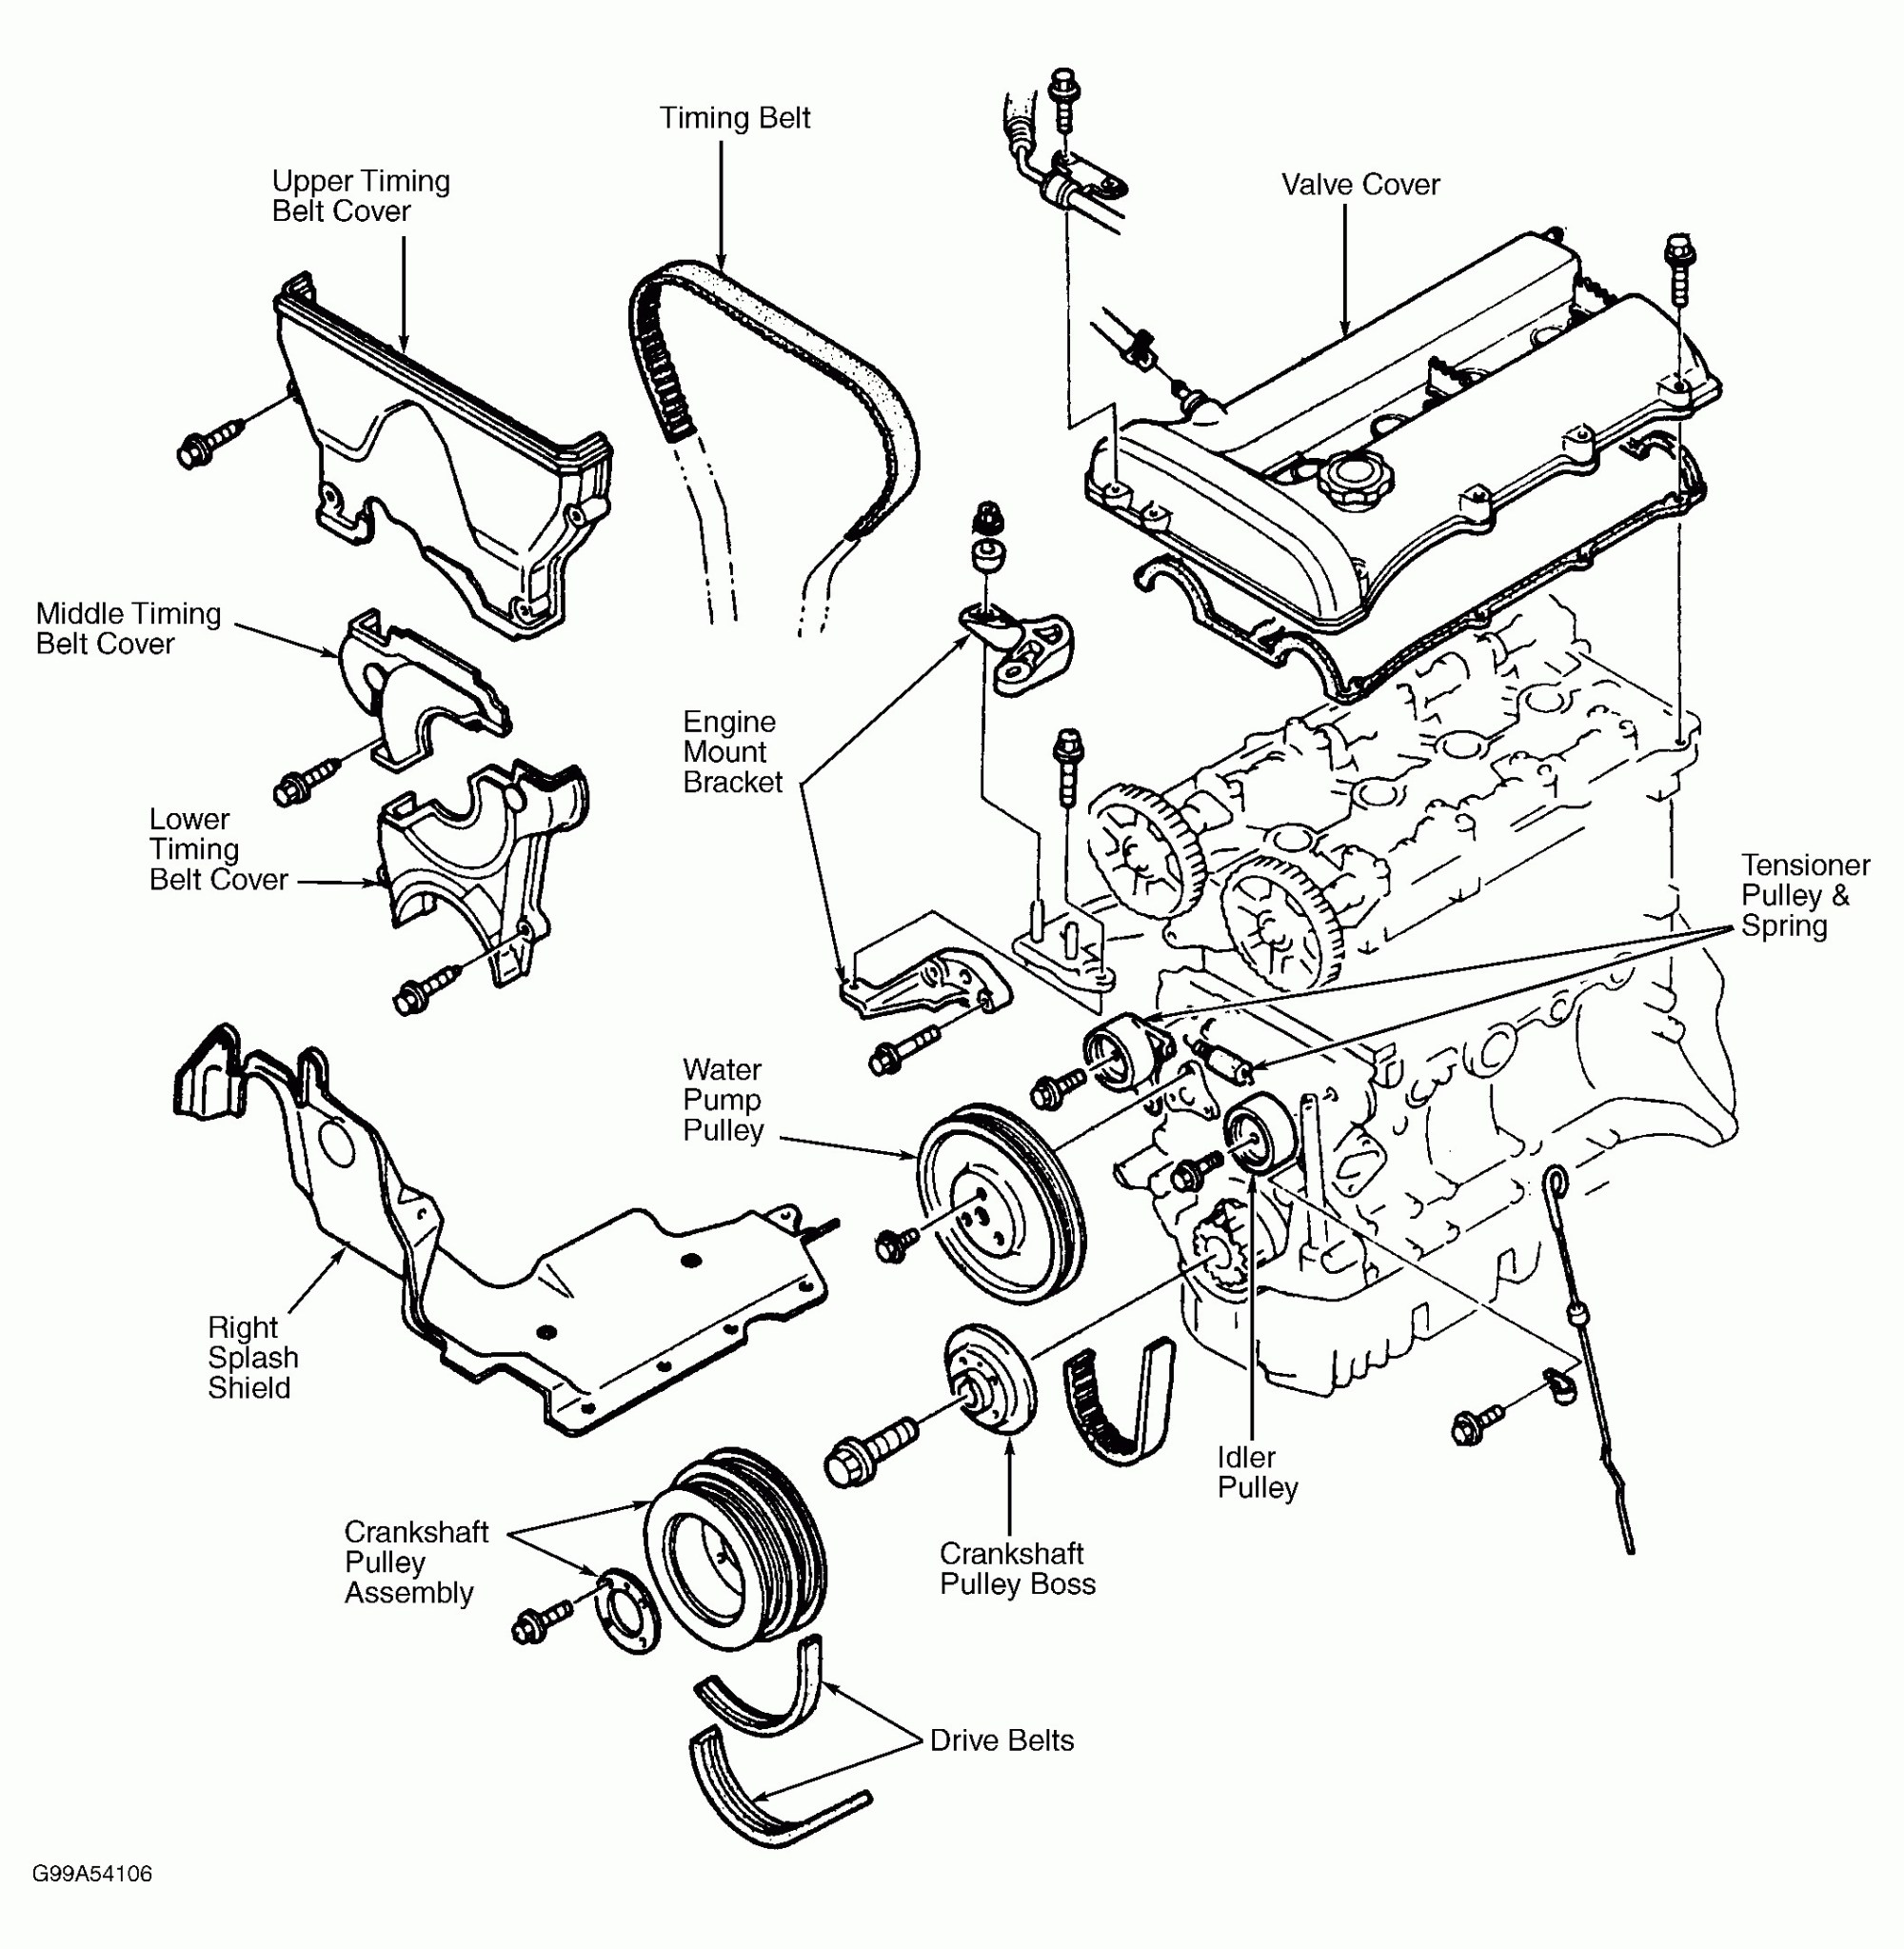 hight resolution of diagram of a 1999 mazda millenia timing belt 2000 mazda protege 1999 mazda protege engine diagram